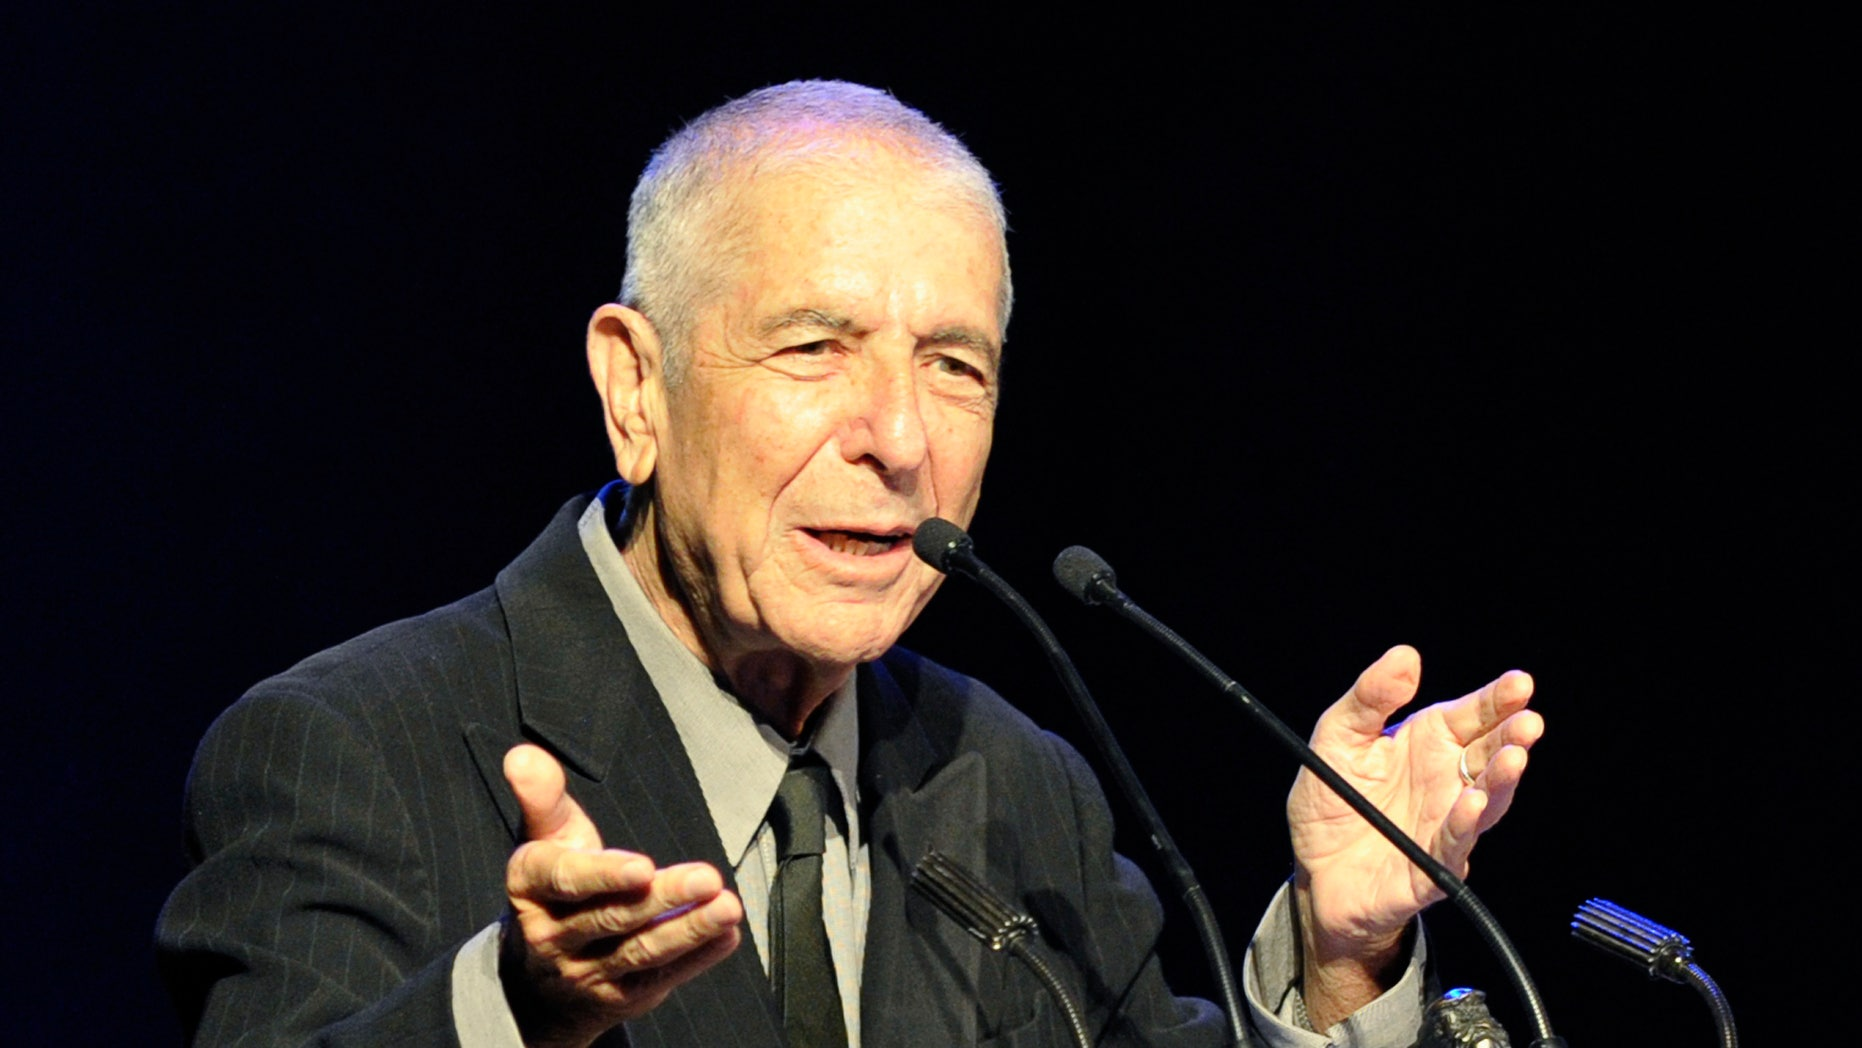 Canadian musician/writer Leonard Cohen speaks after receiving the Glenn Gould Prize in Toronto May 14, 2012.  The Glenn Gould Prize is awarded biennially to a living individual for a lifetime contribution to the arts. REUTERS/ Mike Cassese (CANADA - Tags: ENTERTAINMENT) - RTR322J0